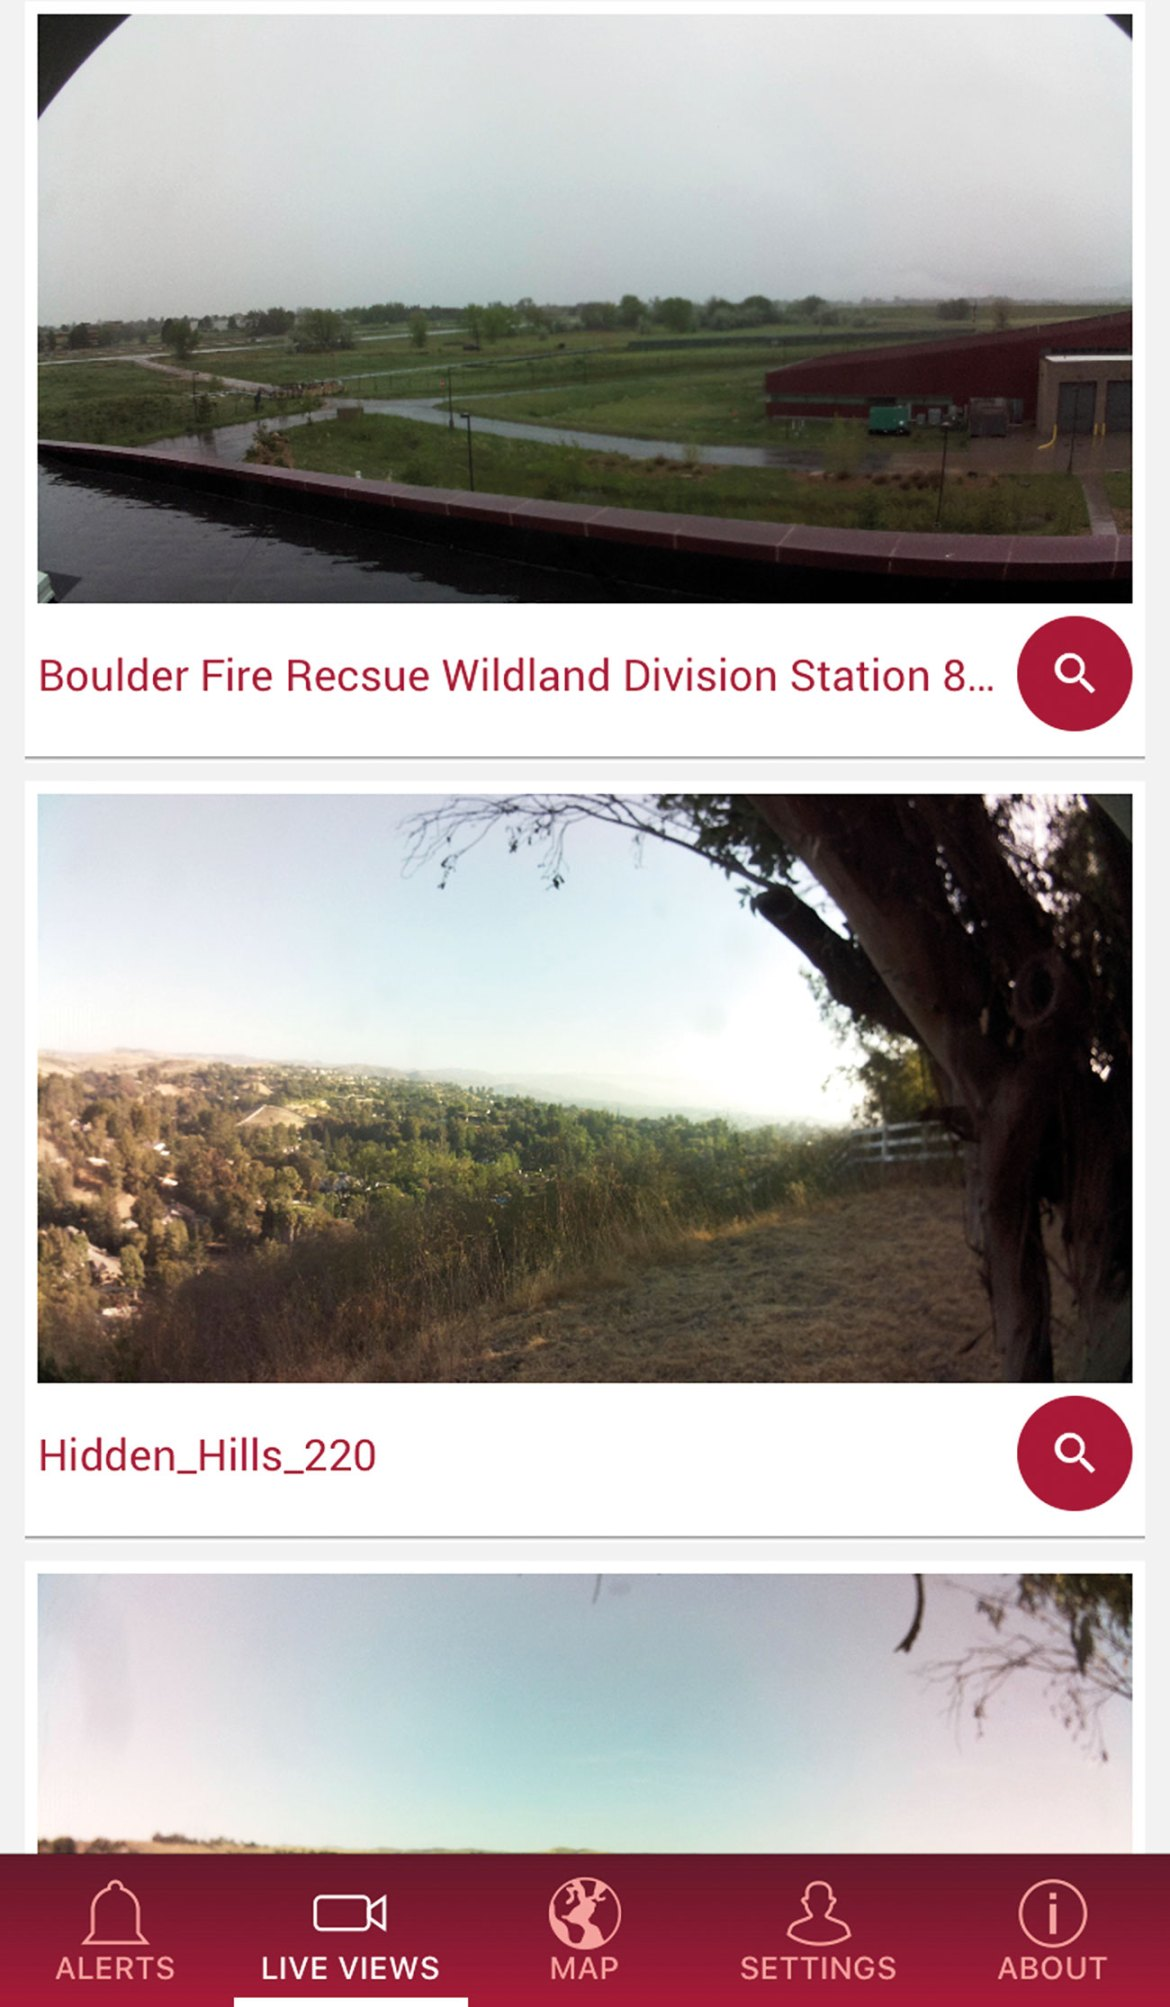 Live views available in the SmokeD Alerts mobile application.